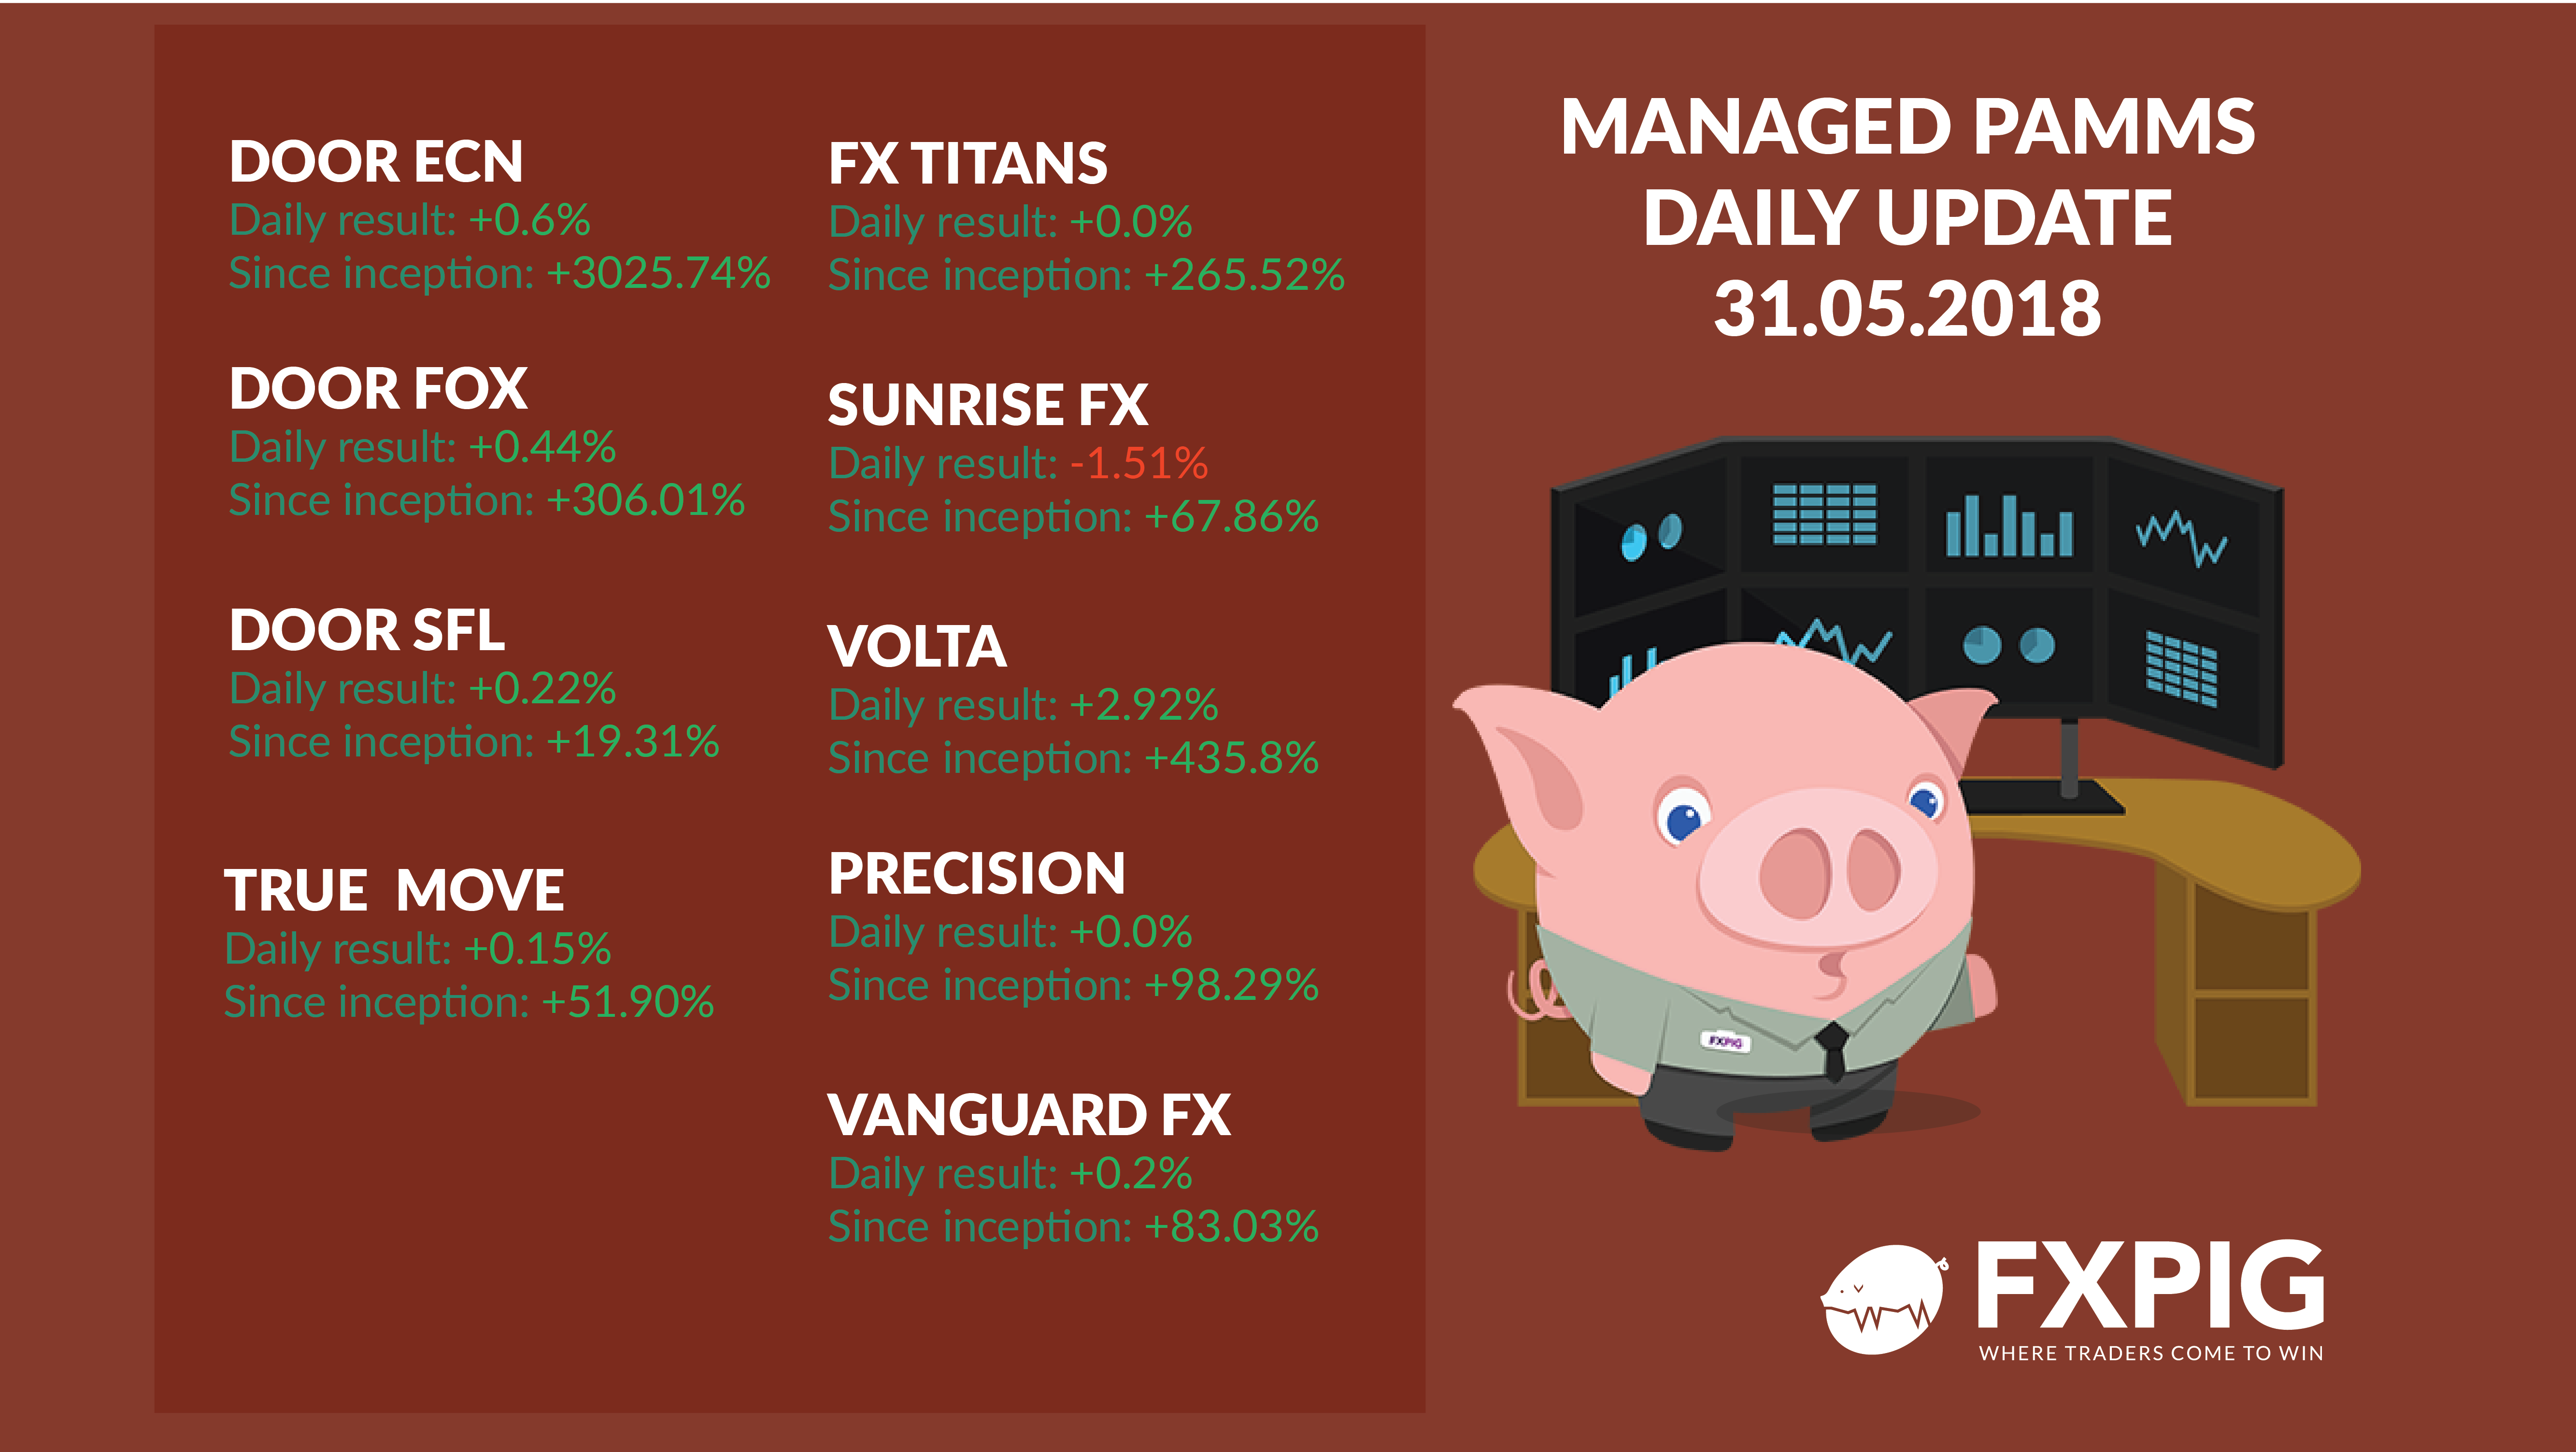 FOREX_managed-daily-accounts3105_FXPIG